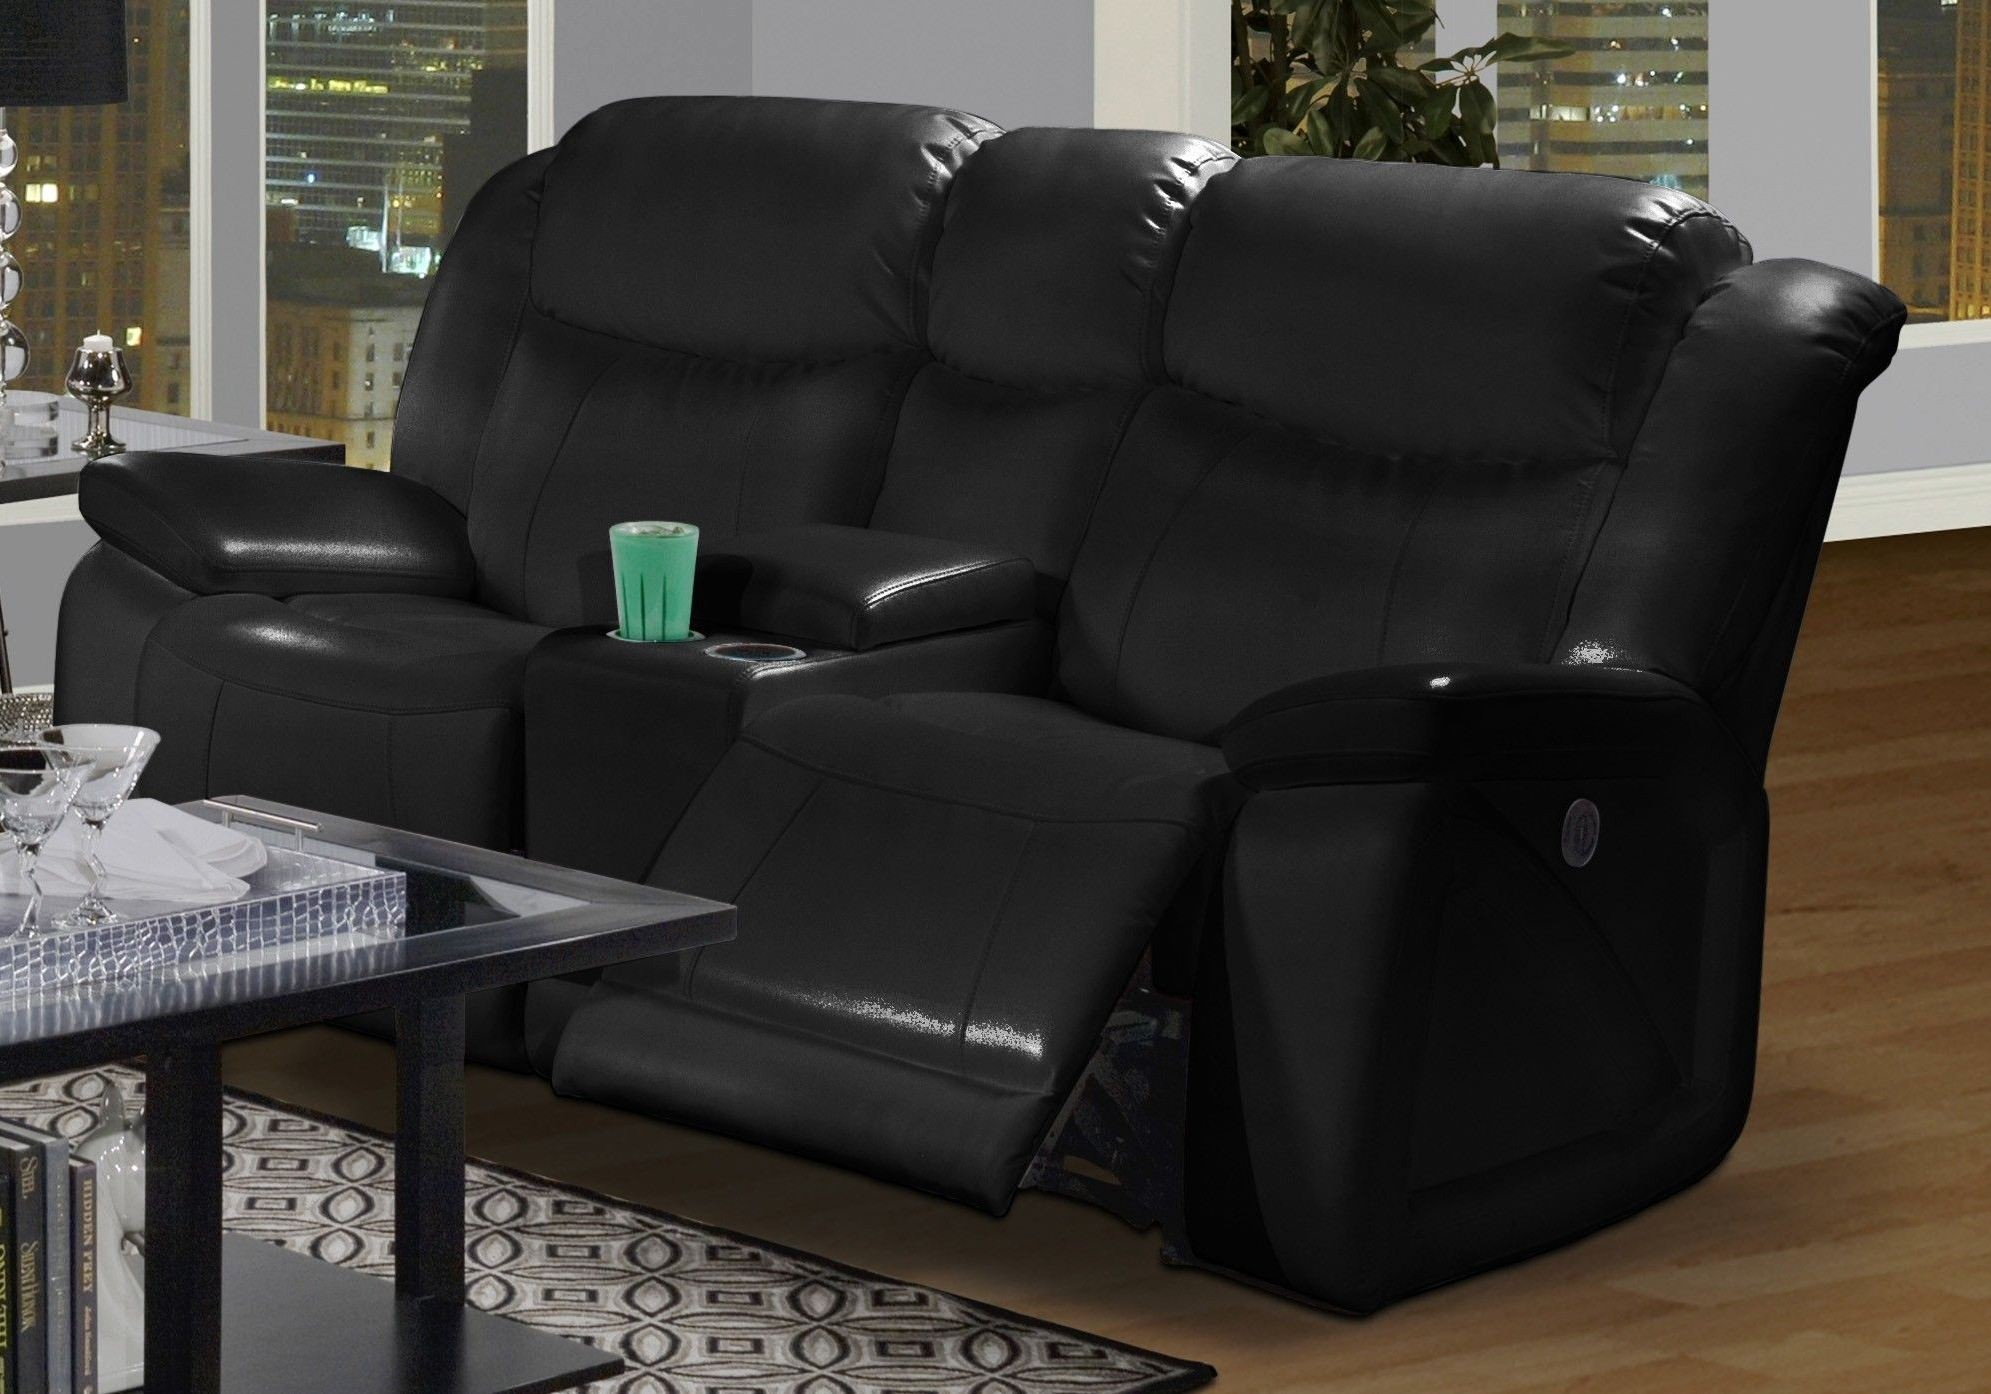 Soho Mesa Black Dual Glider Reclining Loveseat With Console From New Classics 20 324 23 Mbk